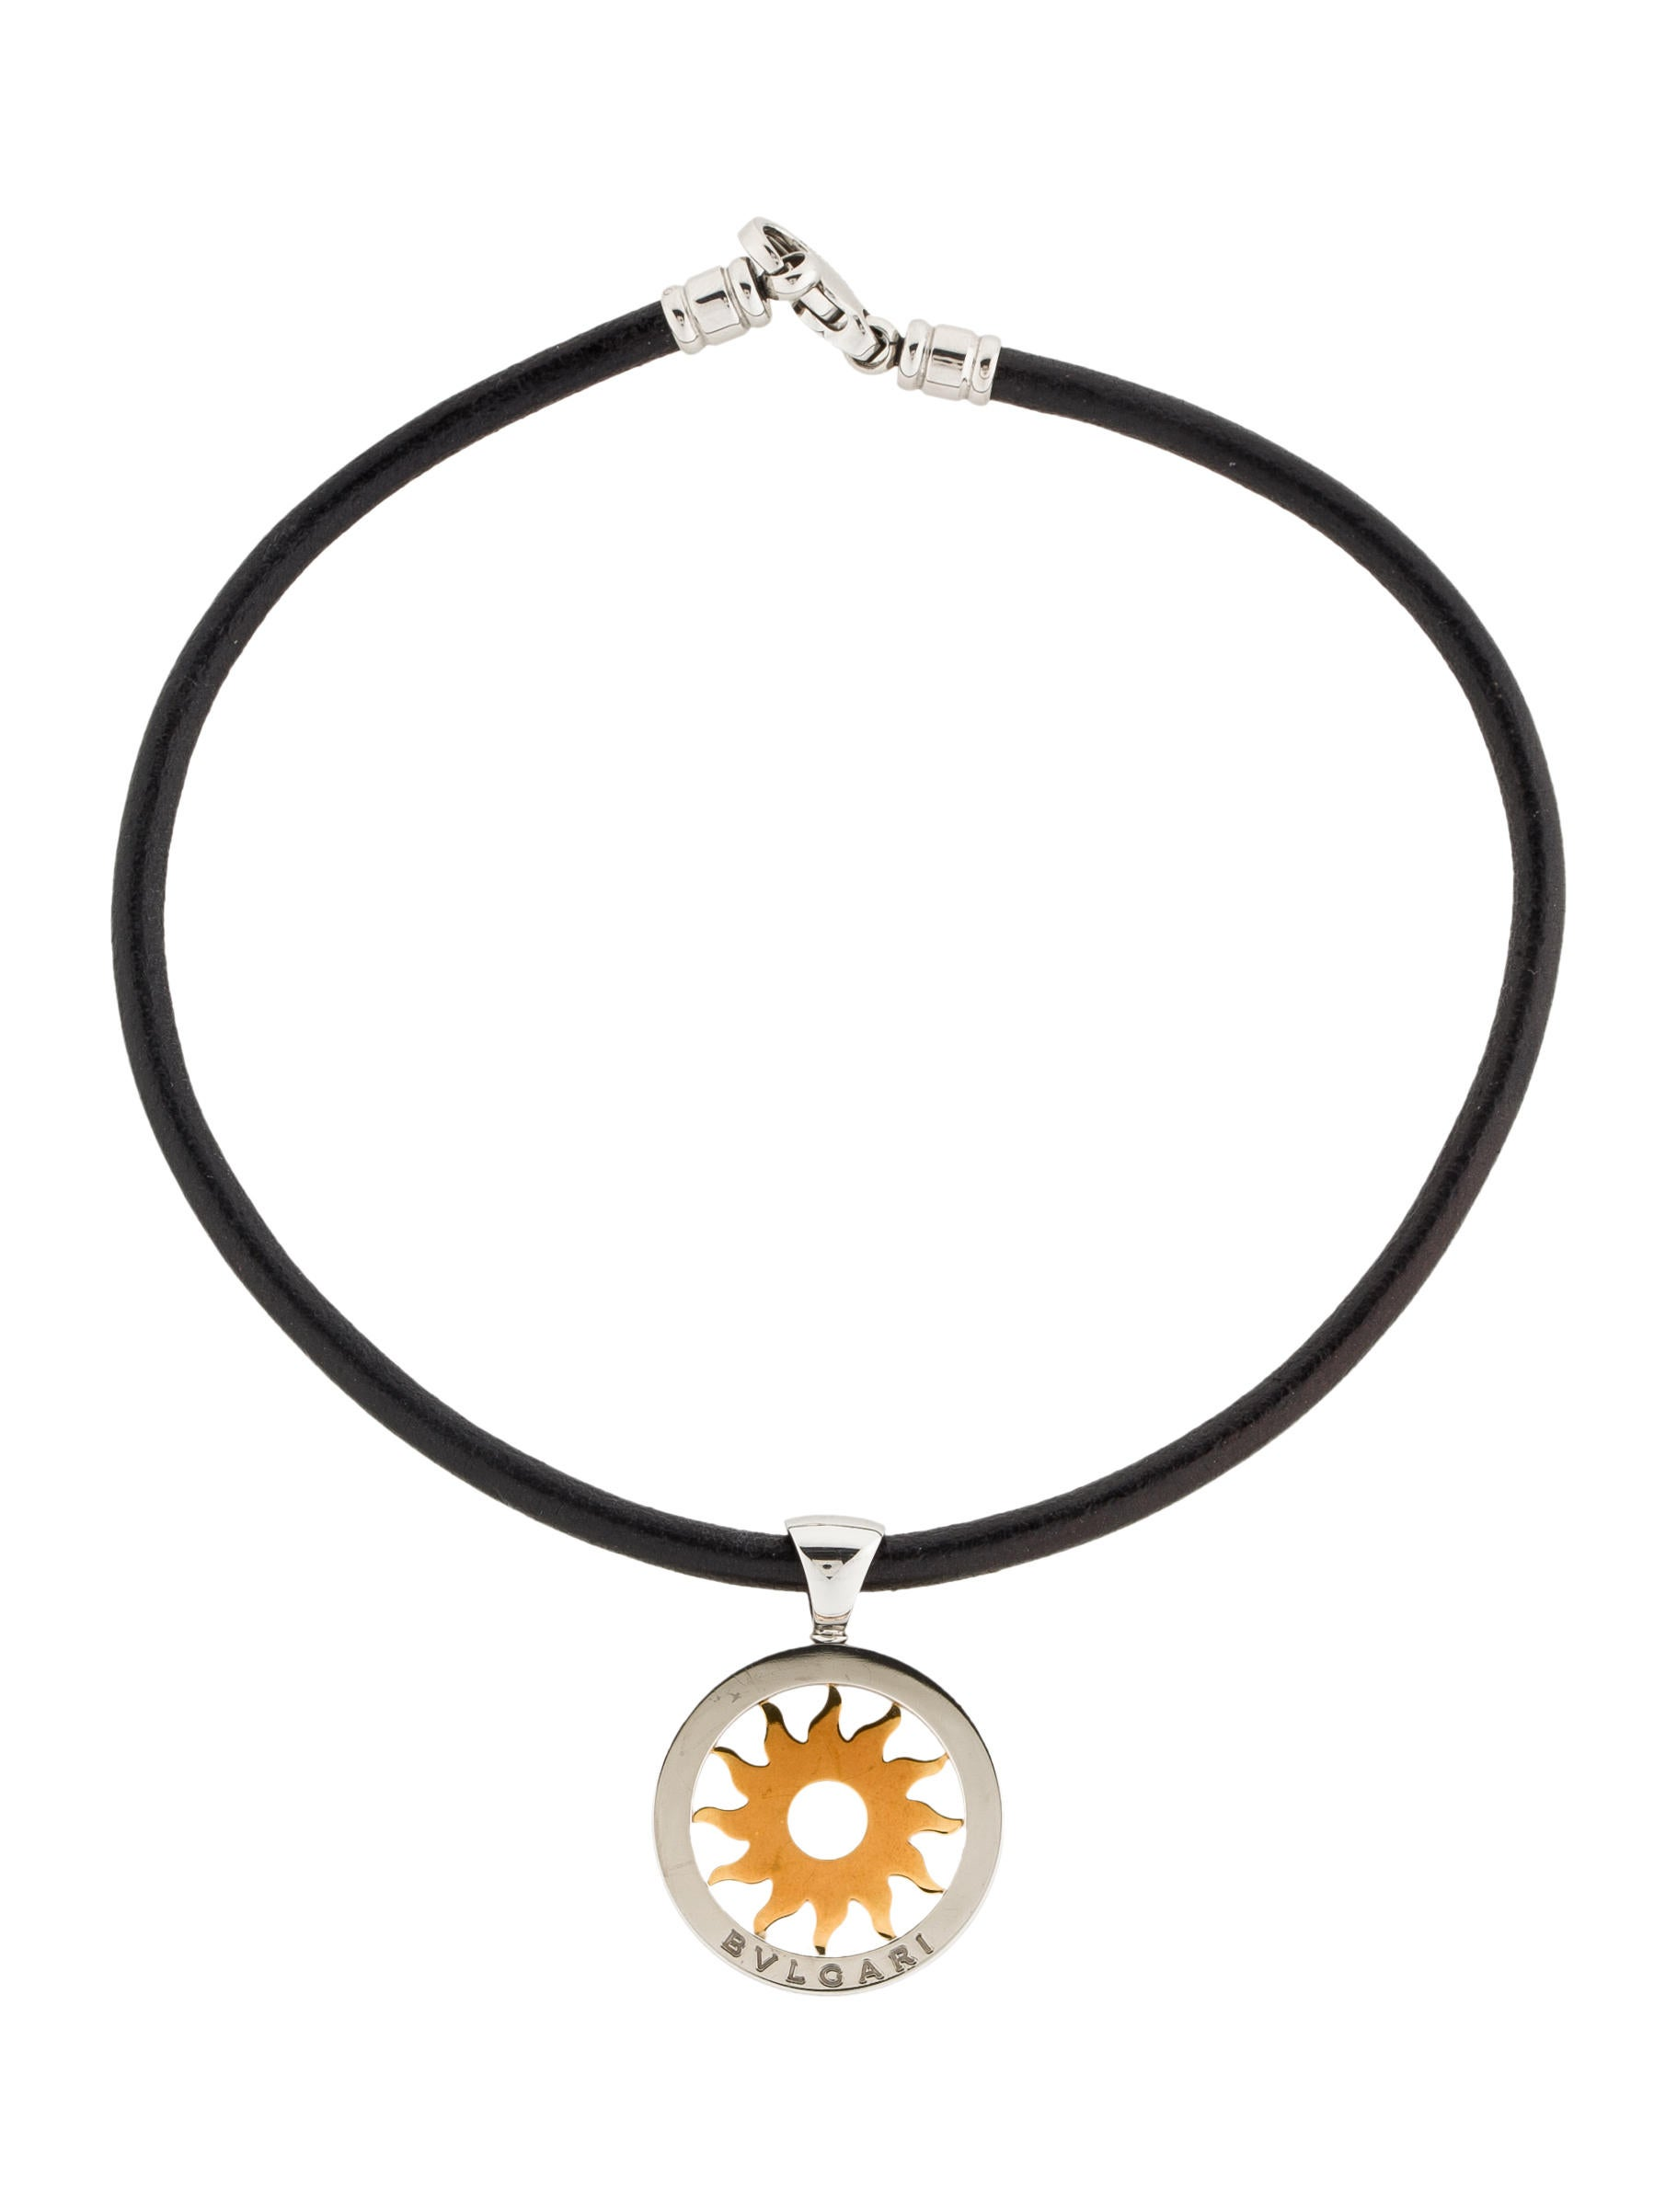 gypsy image sun products pearlized rich necklace